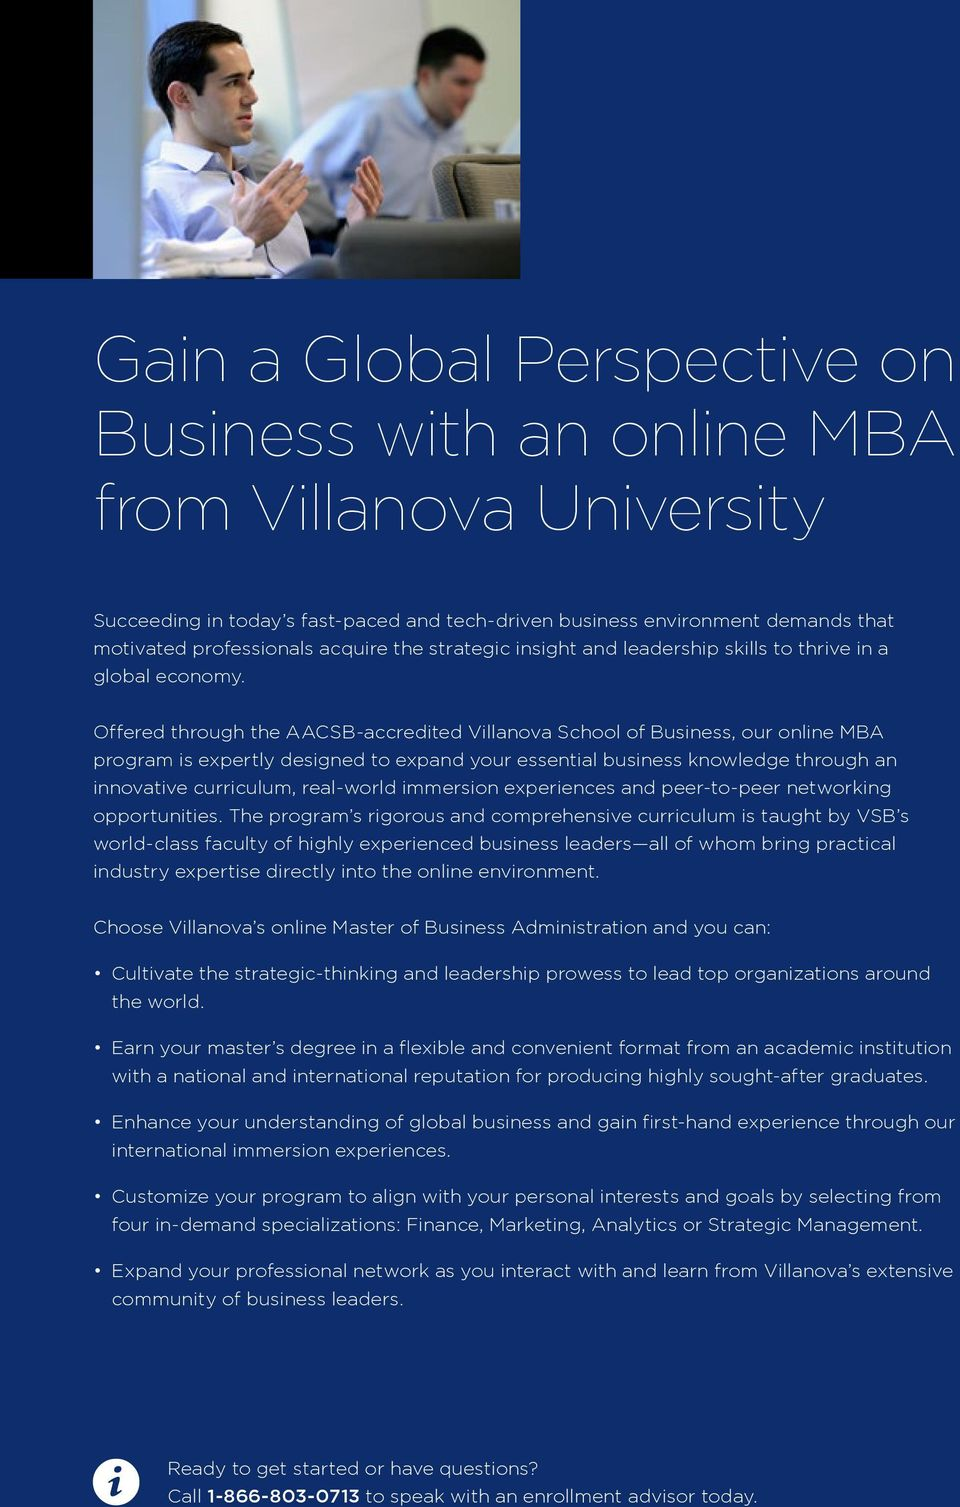 Offered through the AACSB-accredited Villanova School of Business, our online MBA program is expertly designed to expand your essential business knowledge through an innovative curriculum, real-world